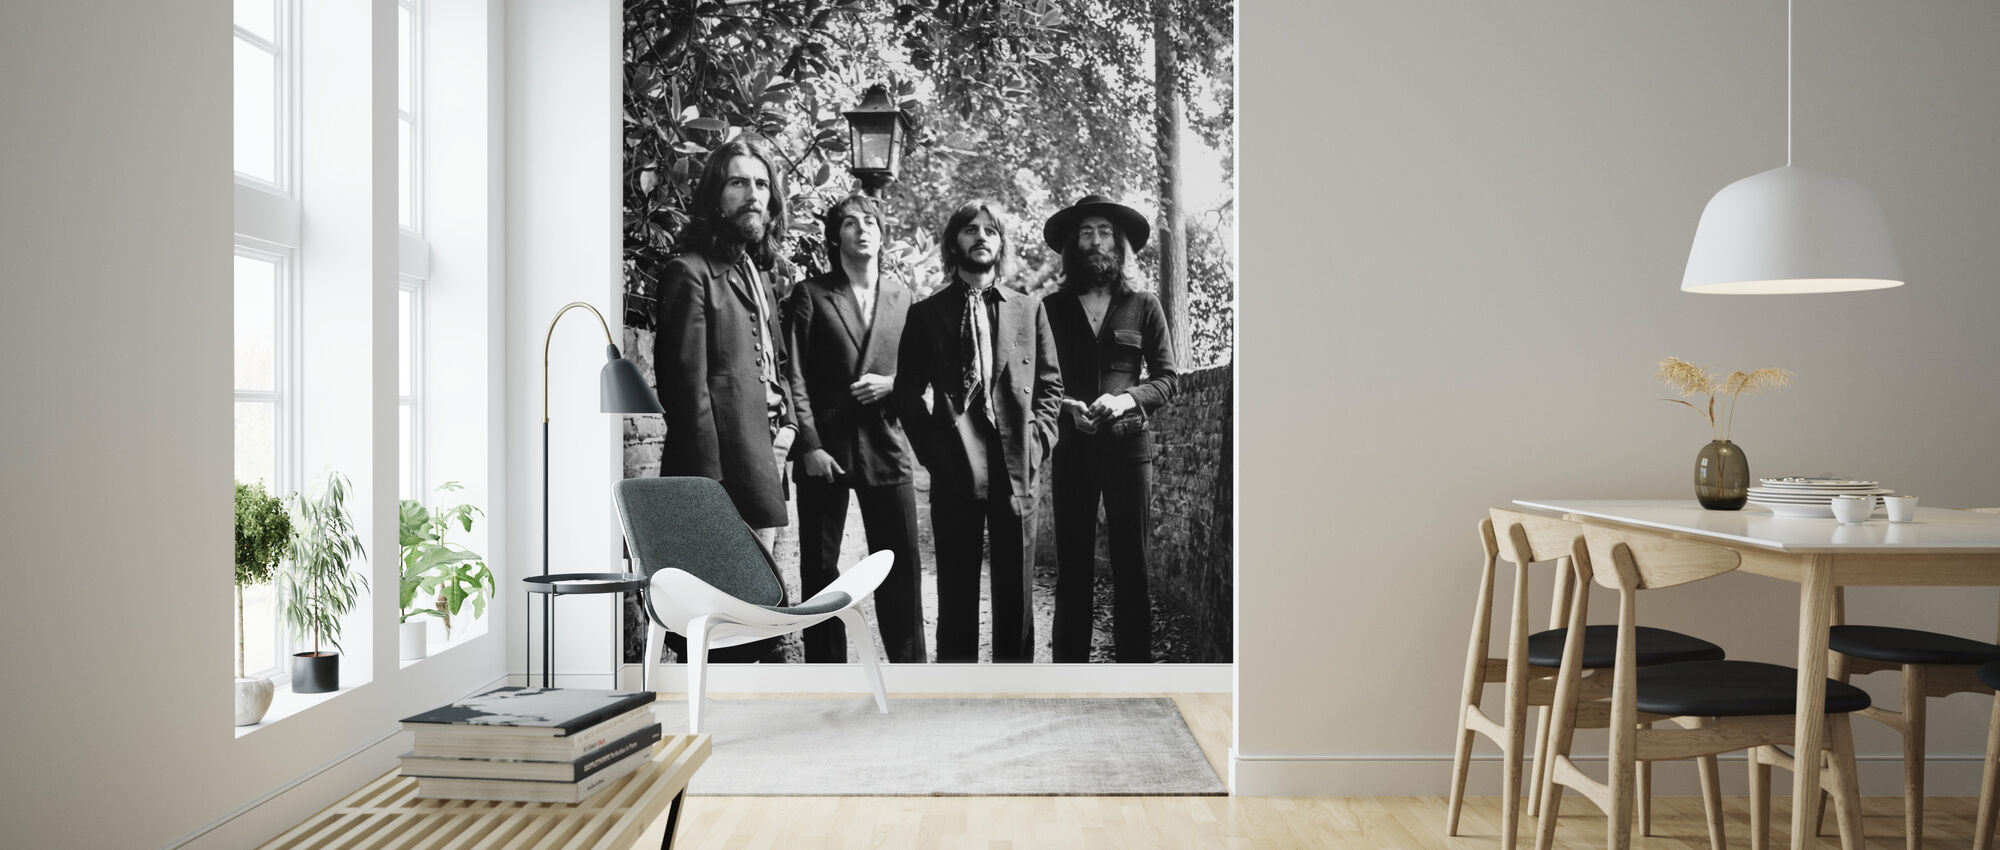 The Beatles - Finale Fotosession 1969 - Tapet - Stue